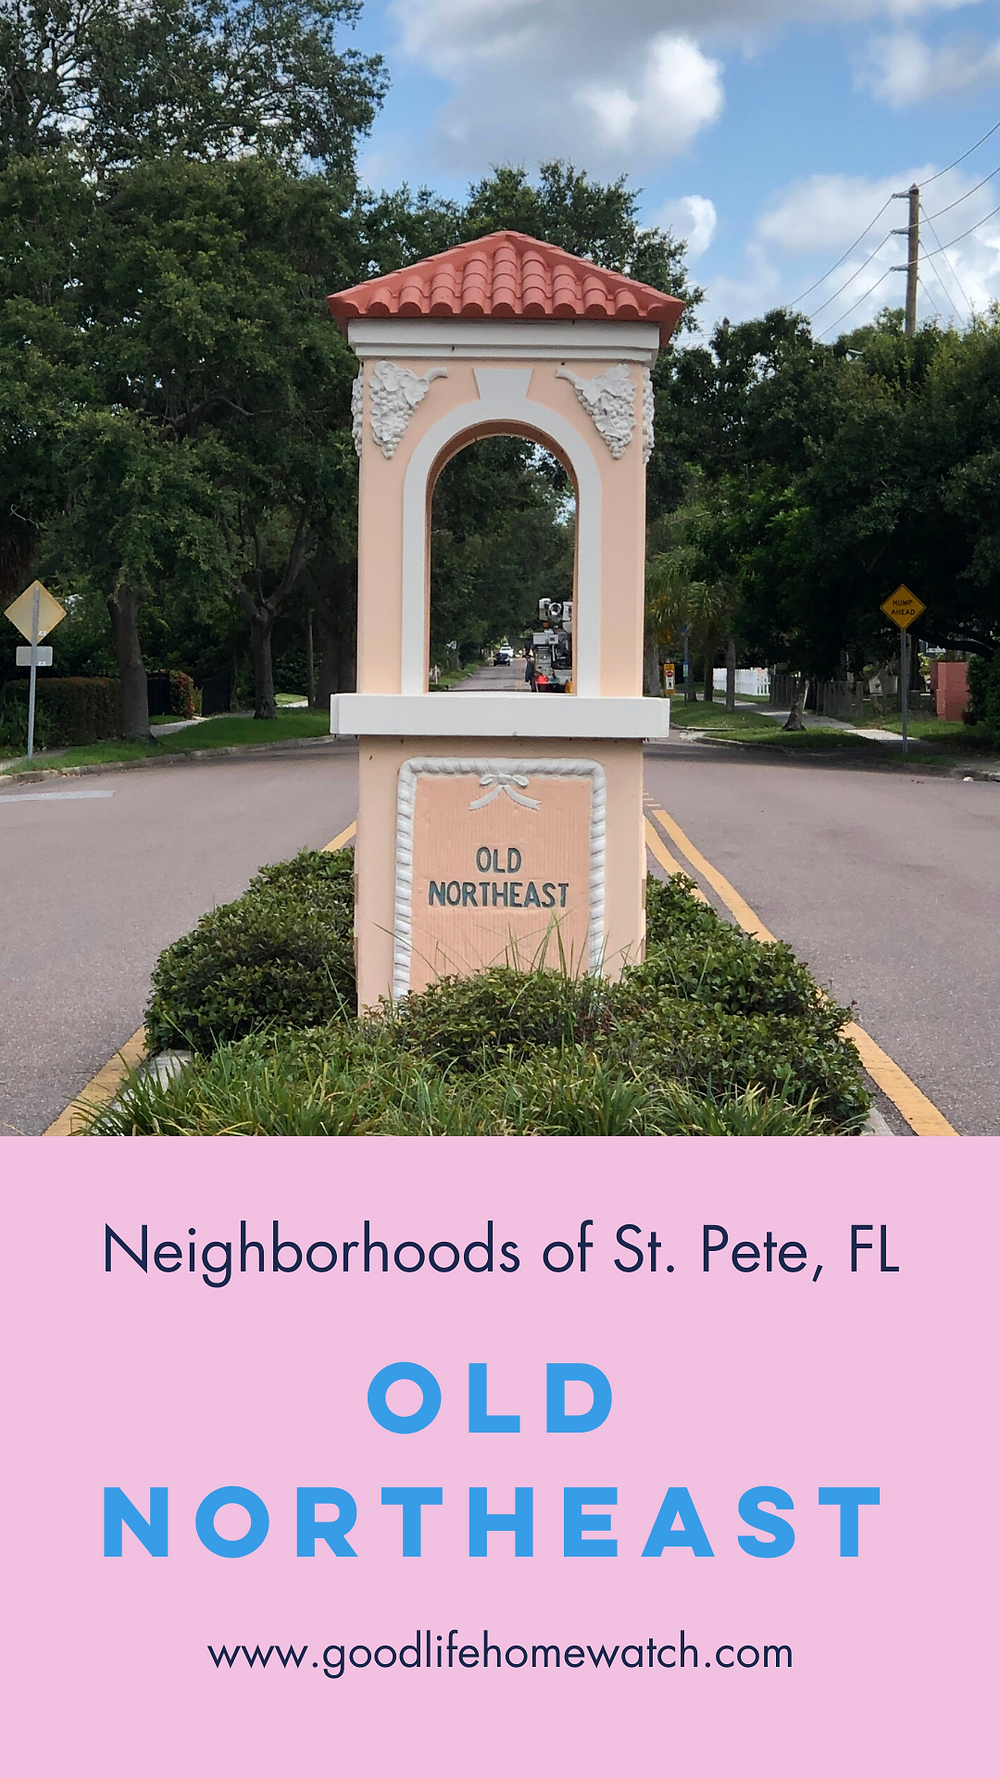 Old Northeast Neighborhood sign in St. Petersburg, FL